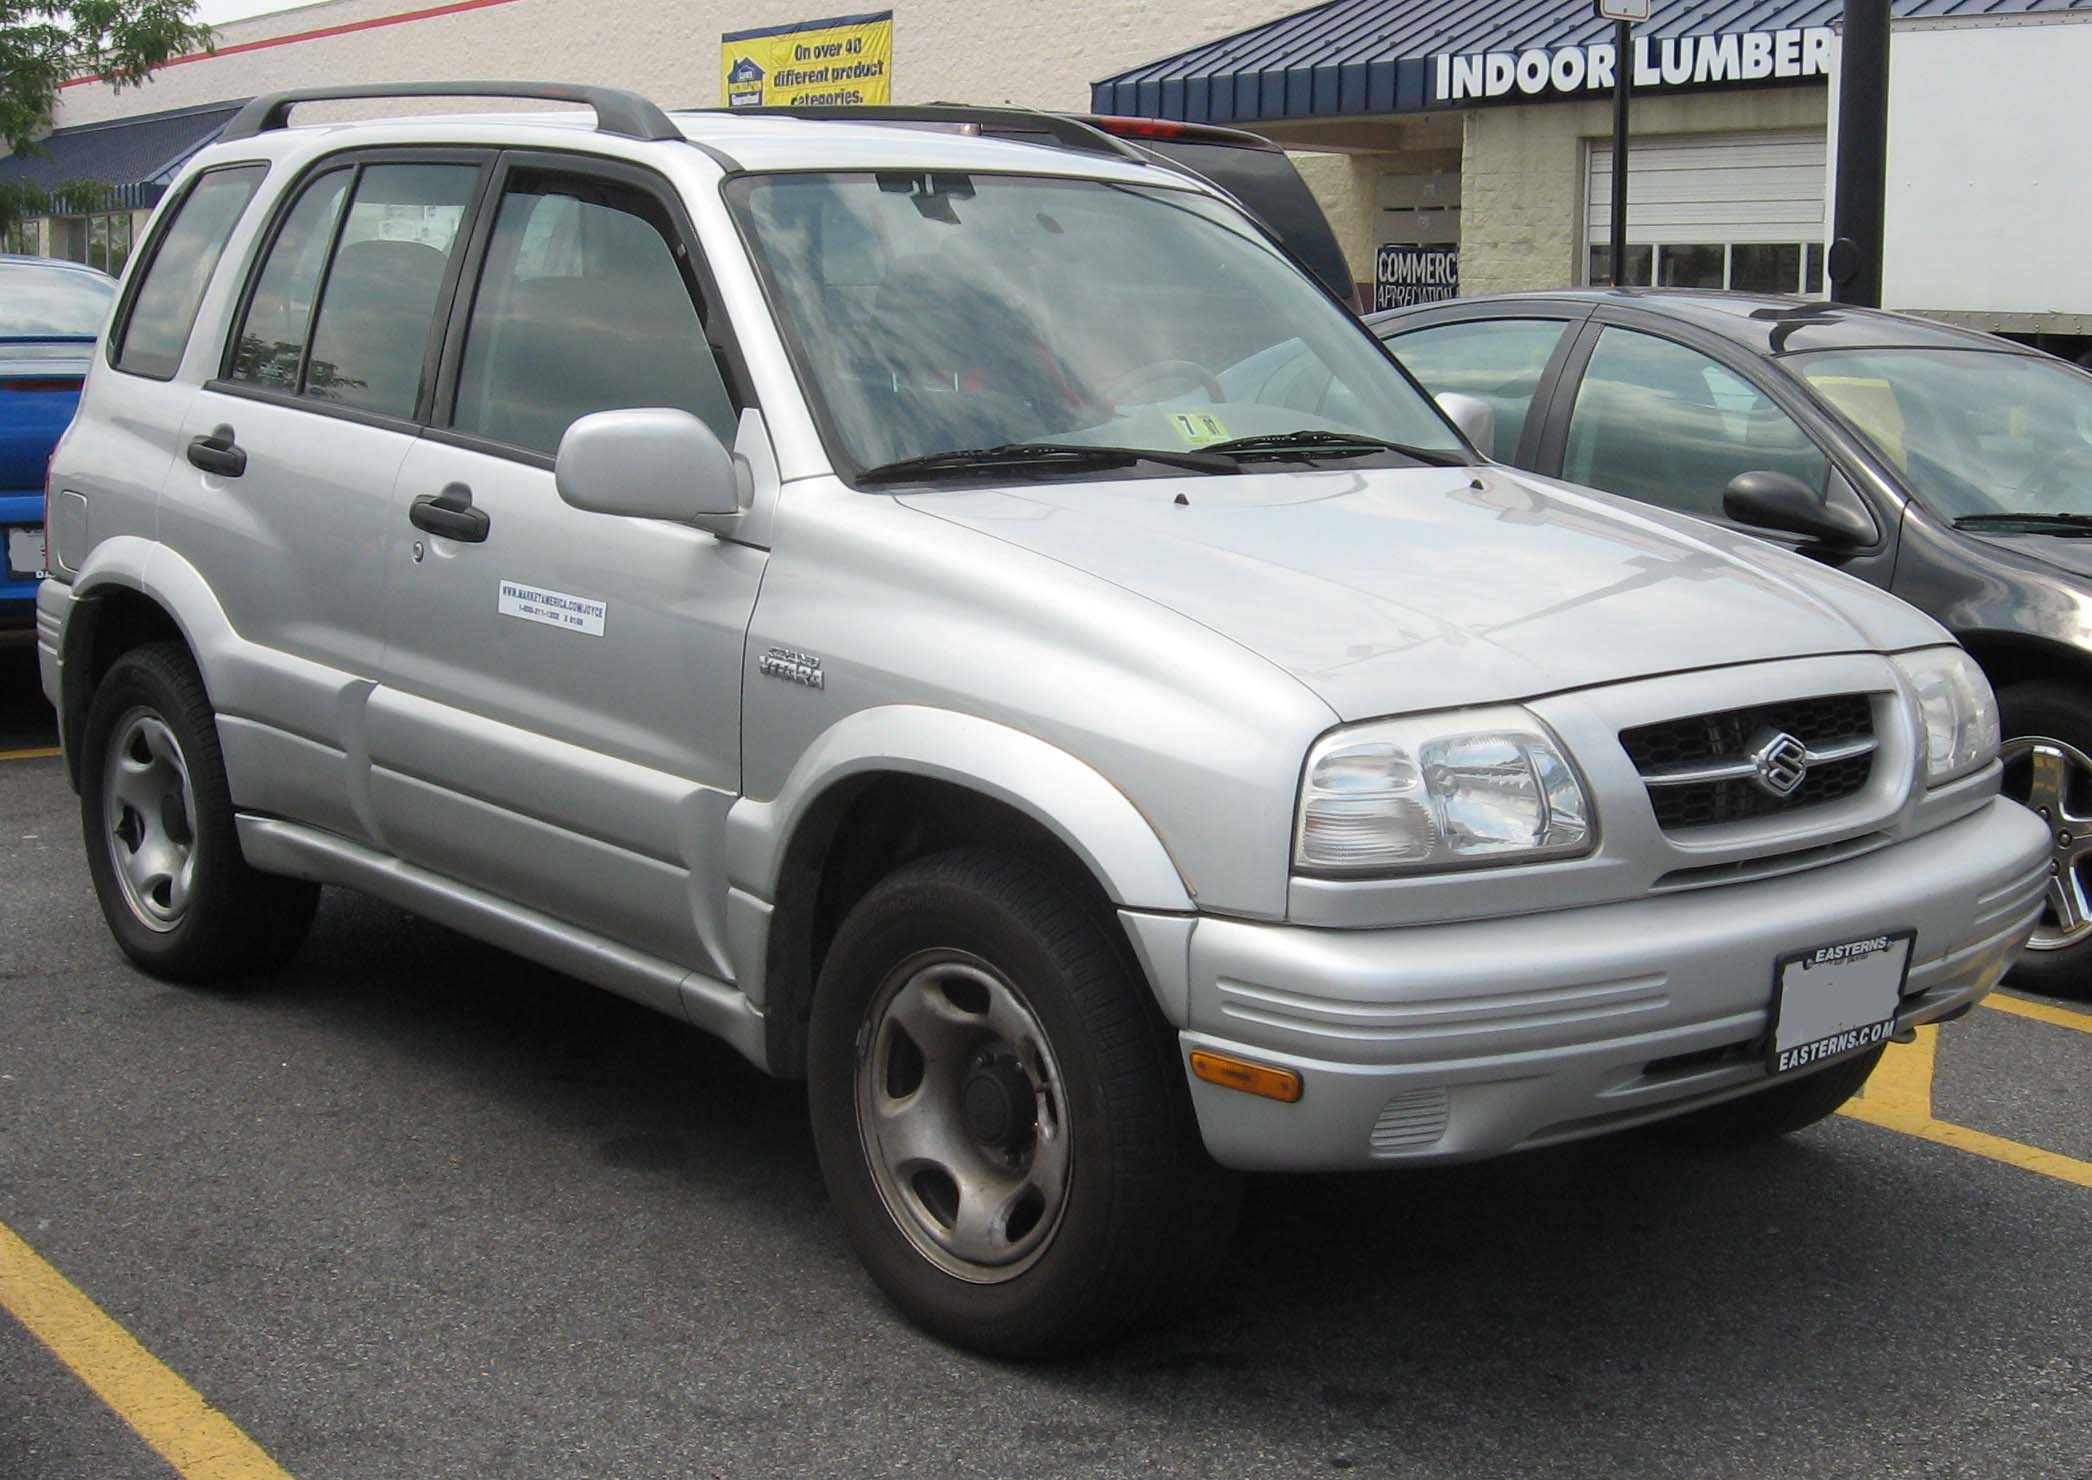 File:1999-01 Suzuki Grand Vitara.jpg - Wikimedia Commons